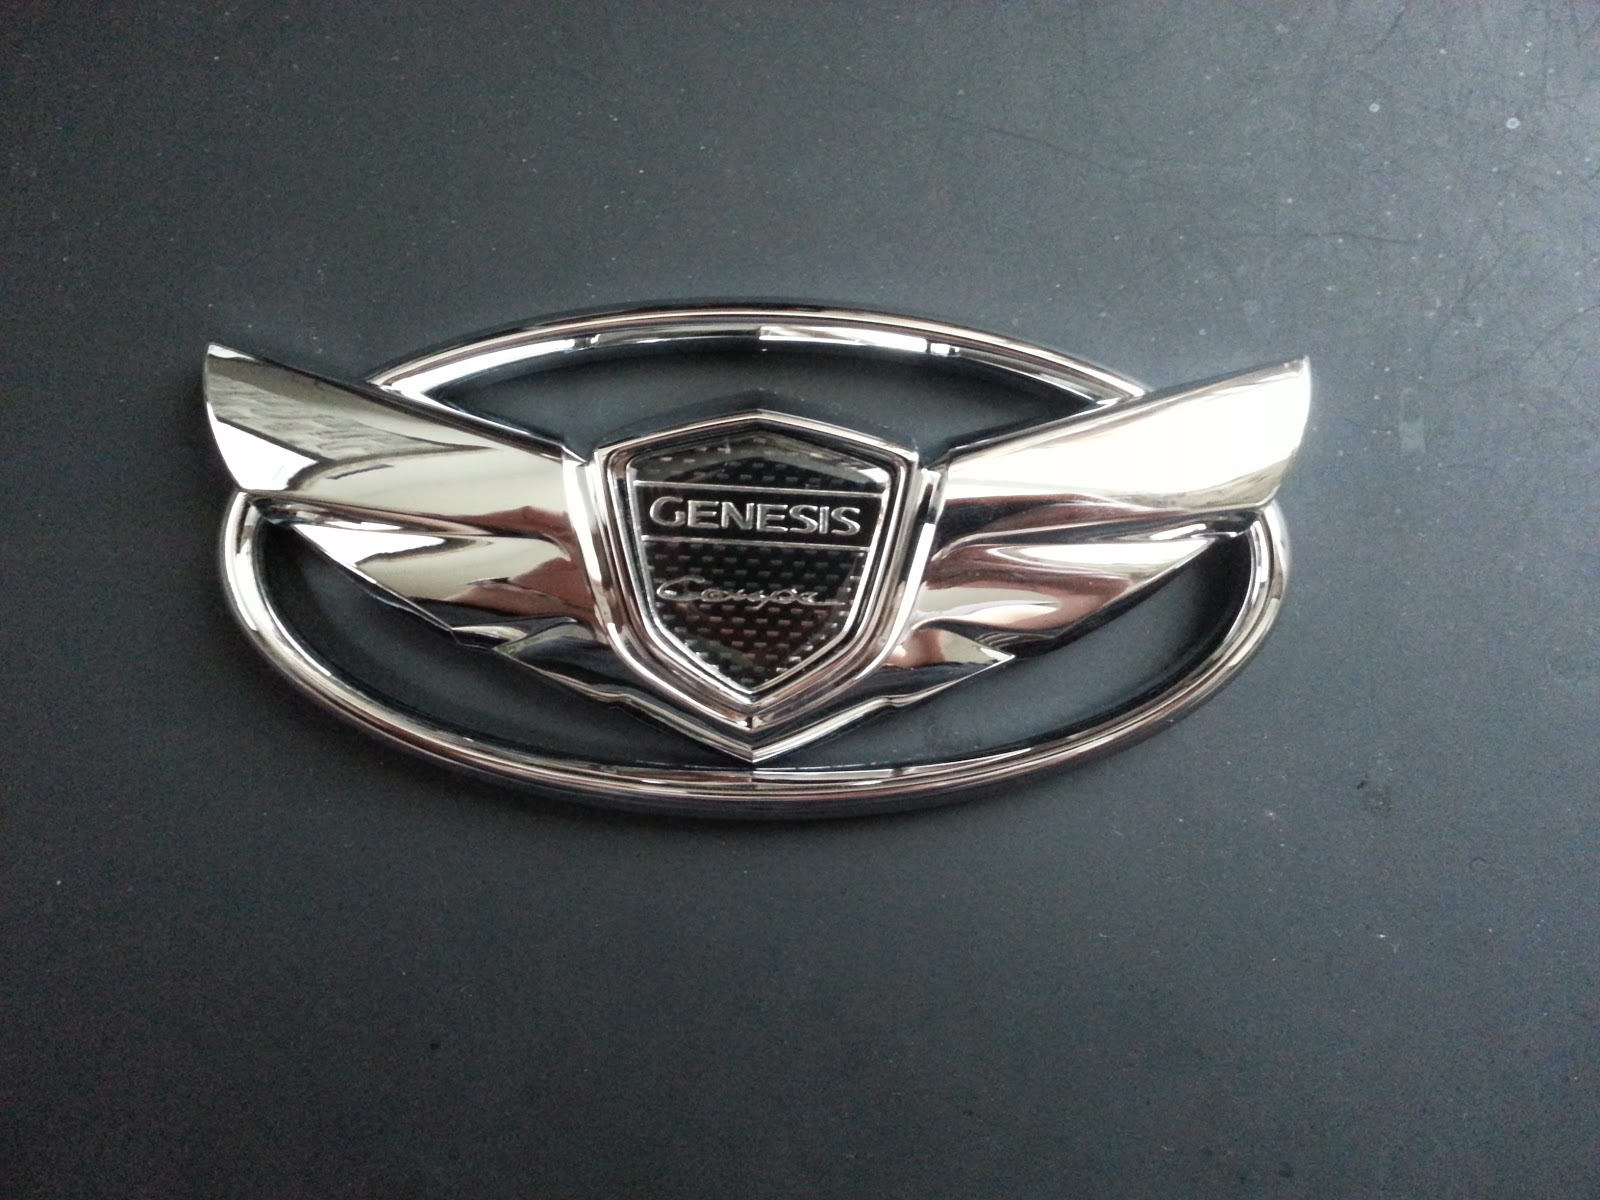 Dereks projects show hyundai genesis coupe wing emblems biocorpaavc Choice Image